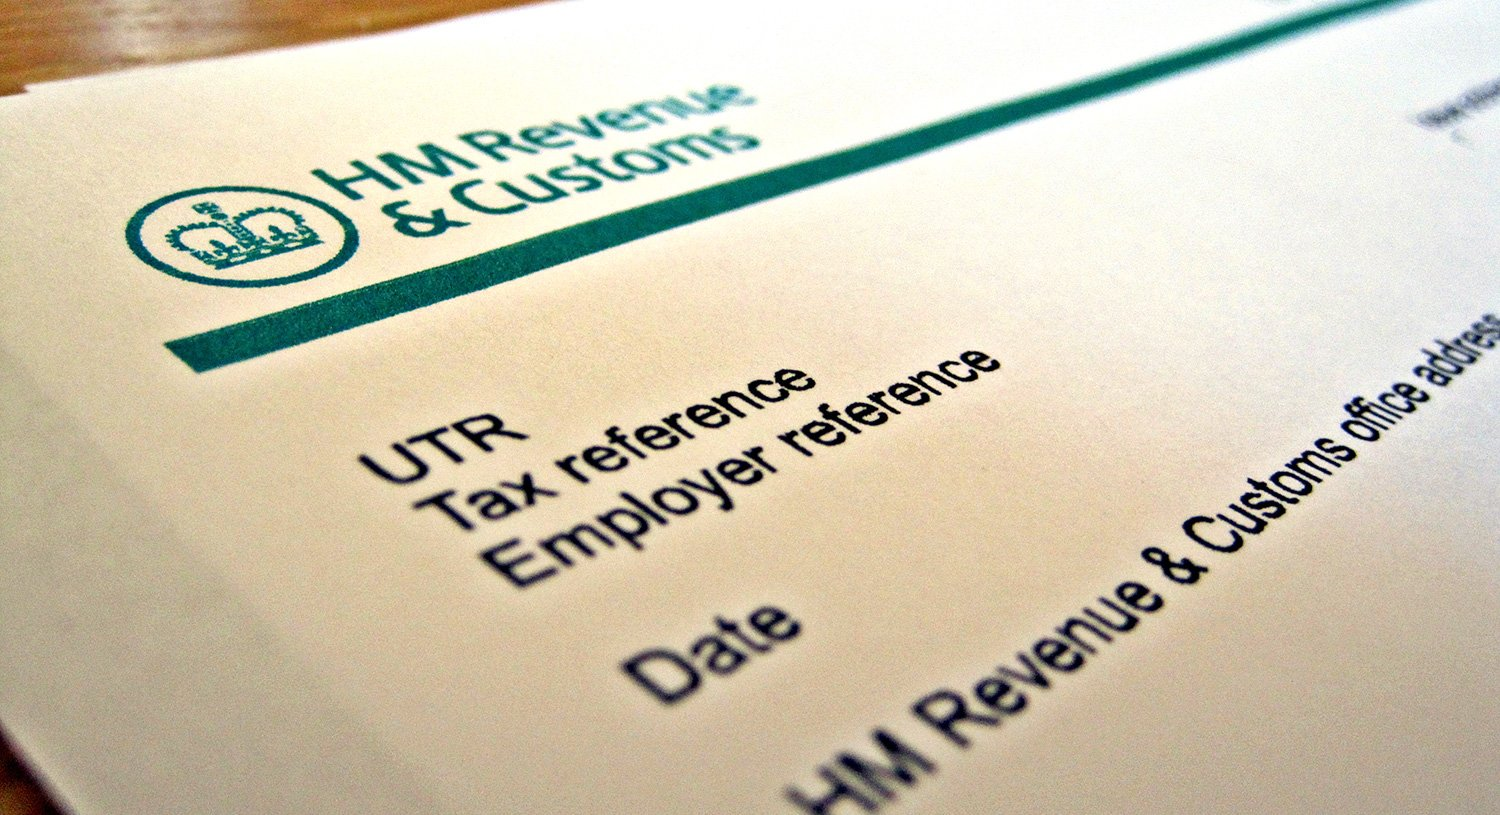 HMRC Tax codes